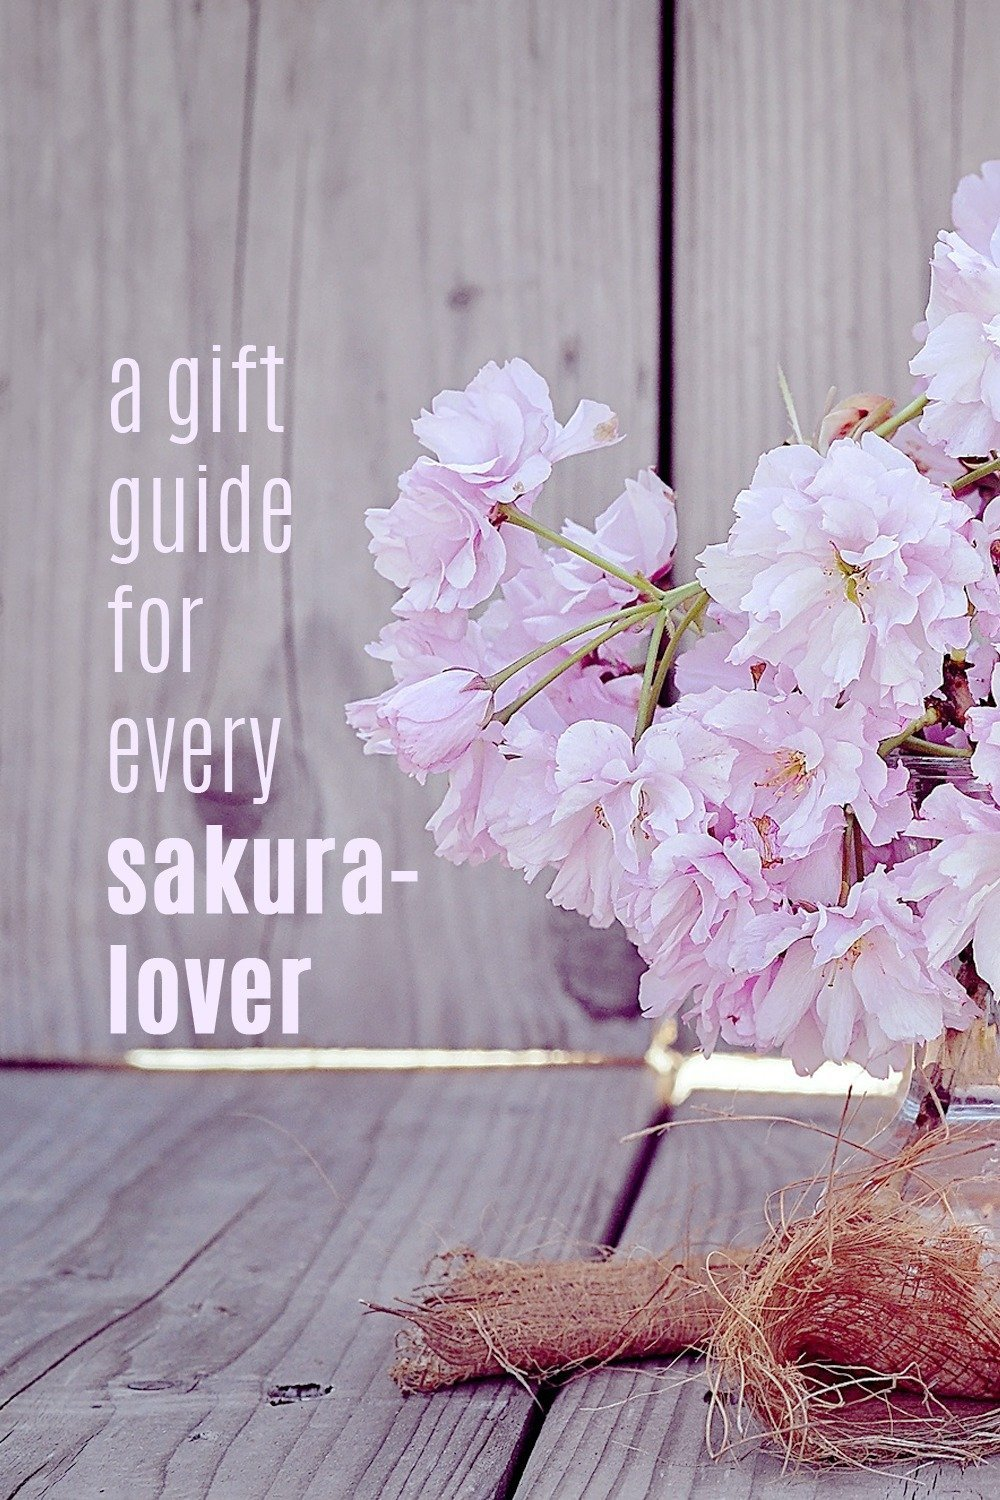 Every spring, sakura-lovers all around the world congregate in Japan for the annual hanami or flower-viewing season. If you can't make it to hanami this year, how about making the cherry blossoms come to you instead? In this gift guide, you'll find home decors, bath products, and personal items that will surely surround you with the spring season's fresh and inspiring vibe. Click through for a cherry blossoms-inspired gift guide.